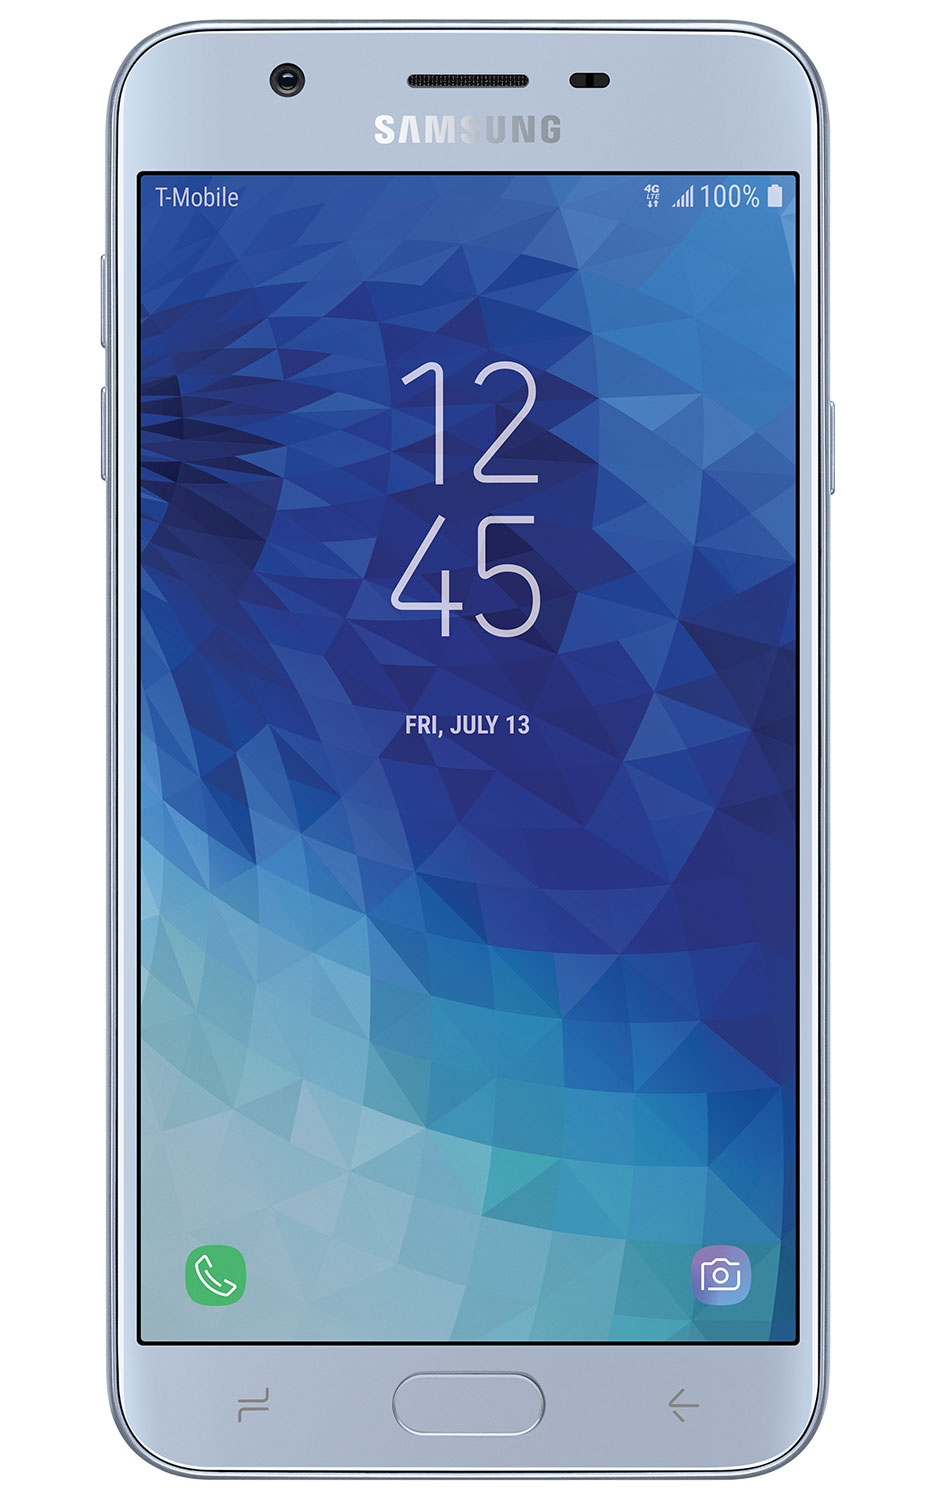 Samsung Galaxy J7 Star Price Specs Phone Reviews T Mobile E5 16gb White